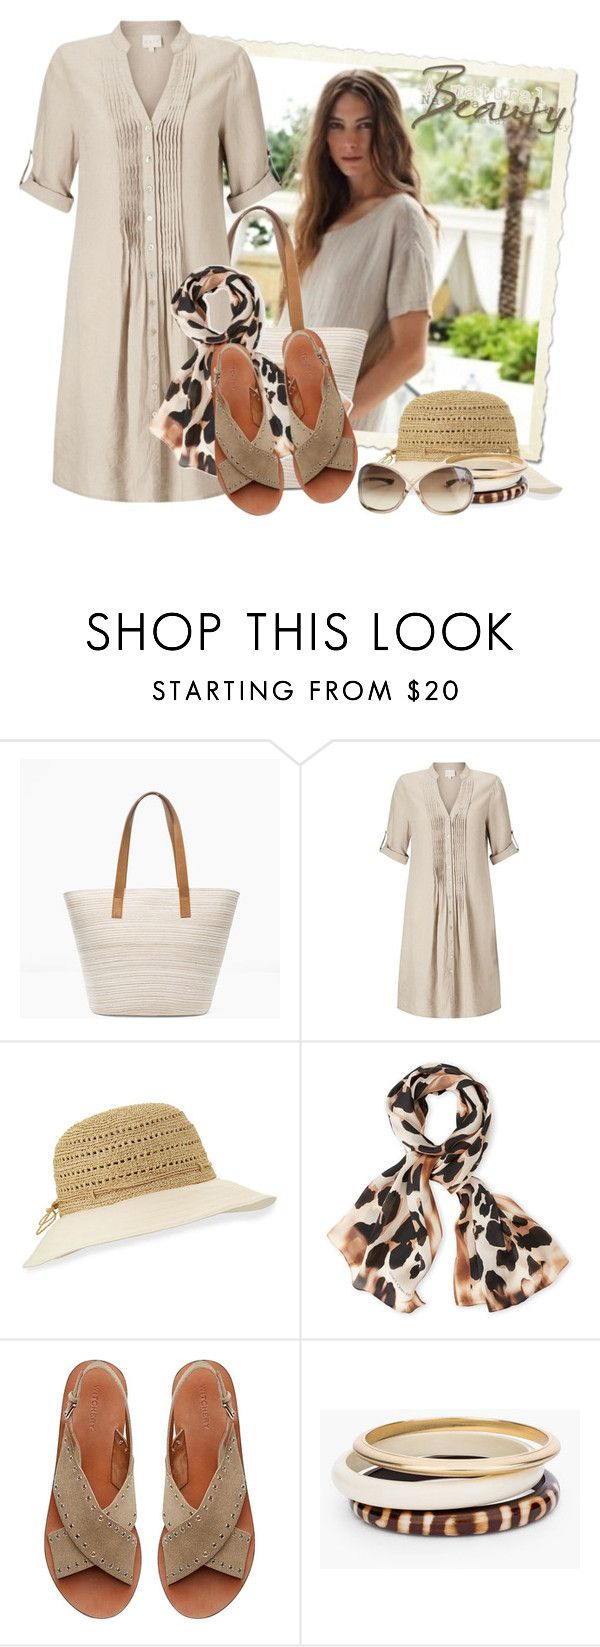 """East Pintuck Linen Dress , Stone"" by tasha1973 ❤ liked on Polyvore featuring Chico's, EAST, Helen Kaminski, Vince Camuto, Witchery and Tom Ford"